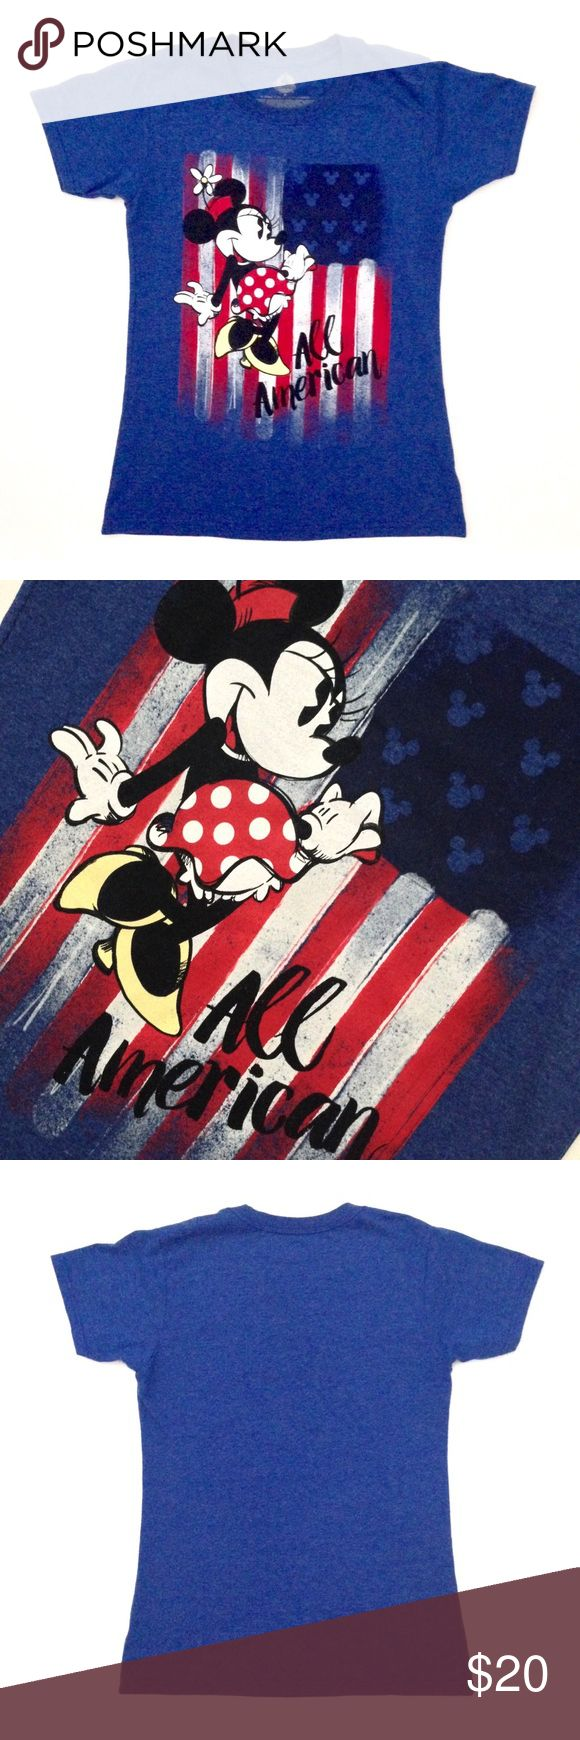 Disney Store Minnie Mouse Americana Flag Tee M Classic Minnie rolls out the red, white, and blue for a star-spangled salute to Old Glory on this soft heathered tee that will make everyone stand up and cheer! Disney Tops Tees - Short Sleeve